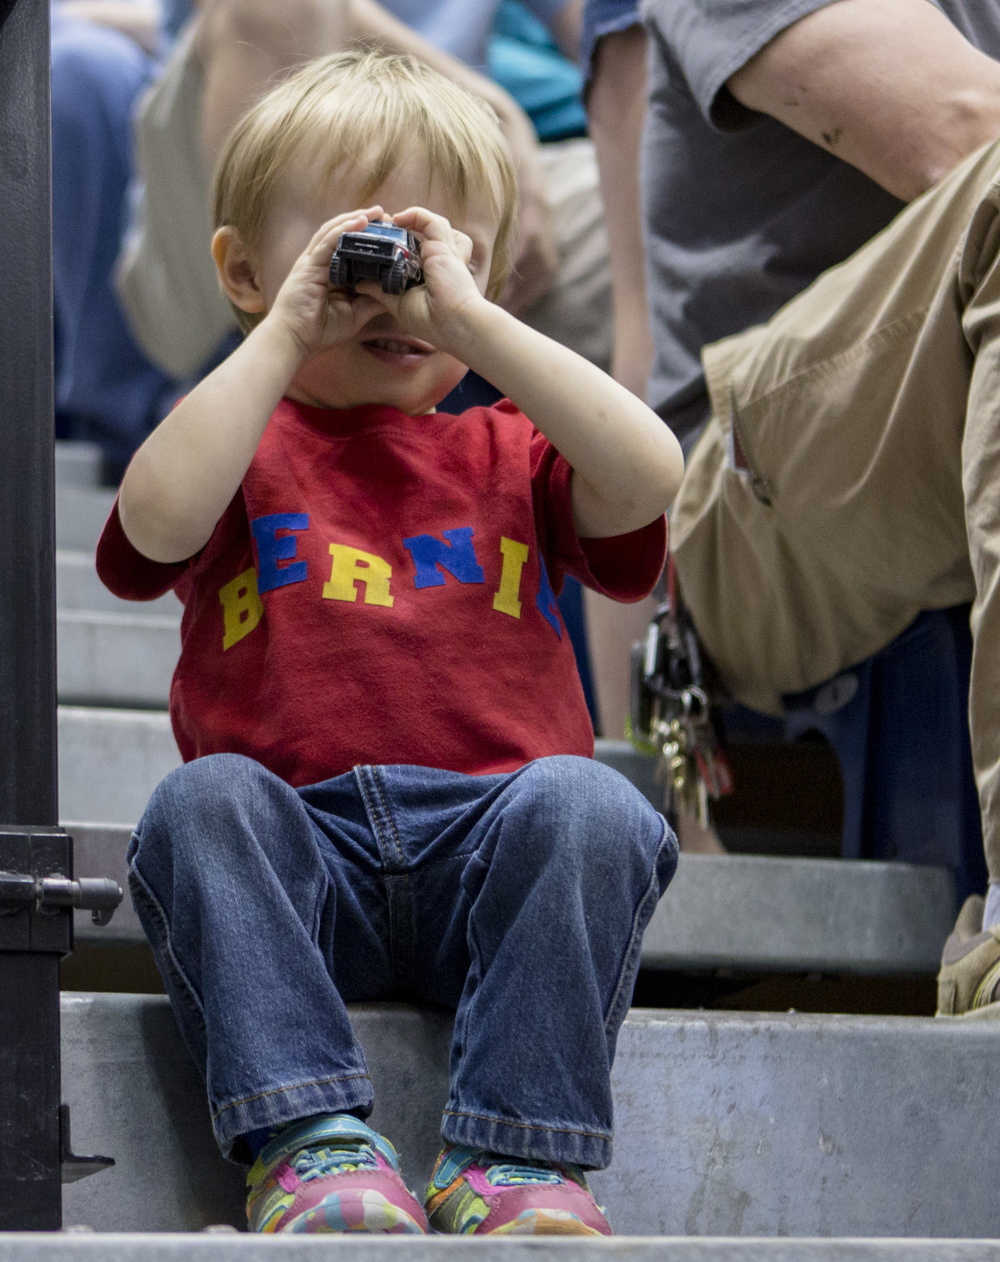 Two and a half year old Waylon Myers plays with his trucks in the stands of Rec Hall during democratic presidential candidate Sen. Bernie Sanders' campaign rally on Tuesday, April 19, 2016.